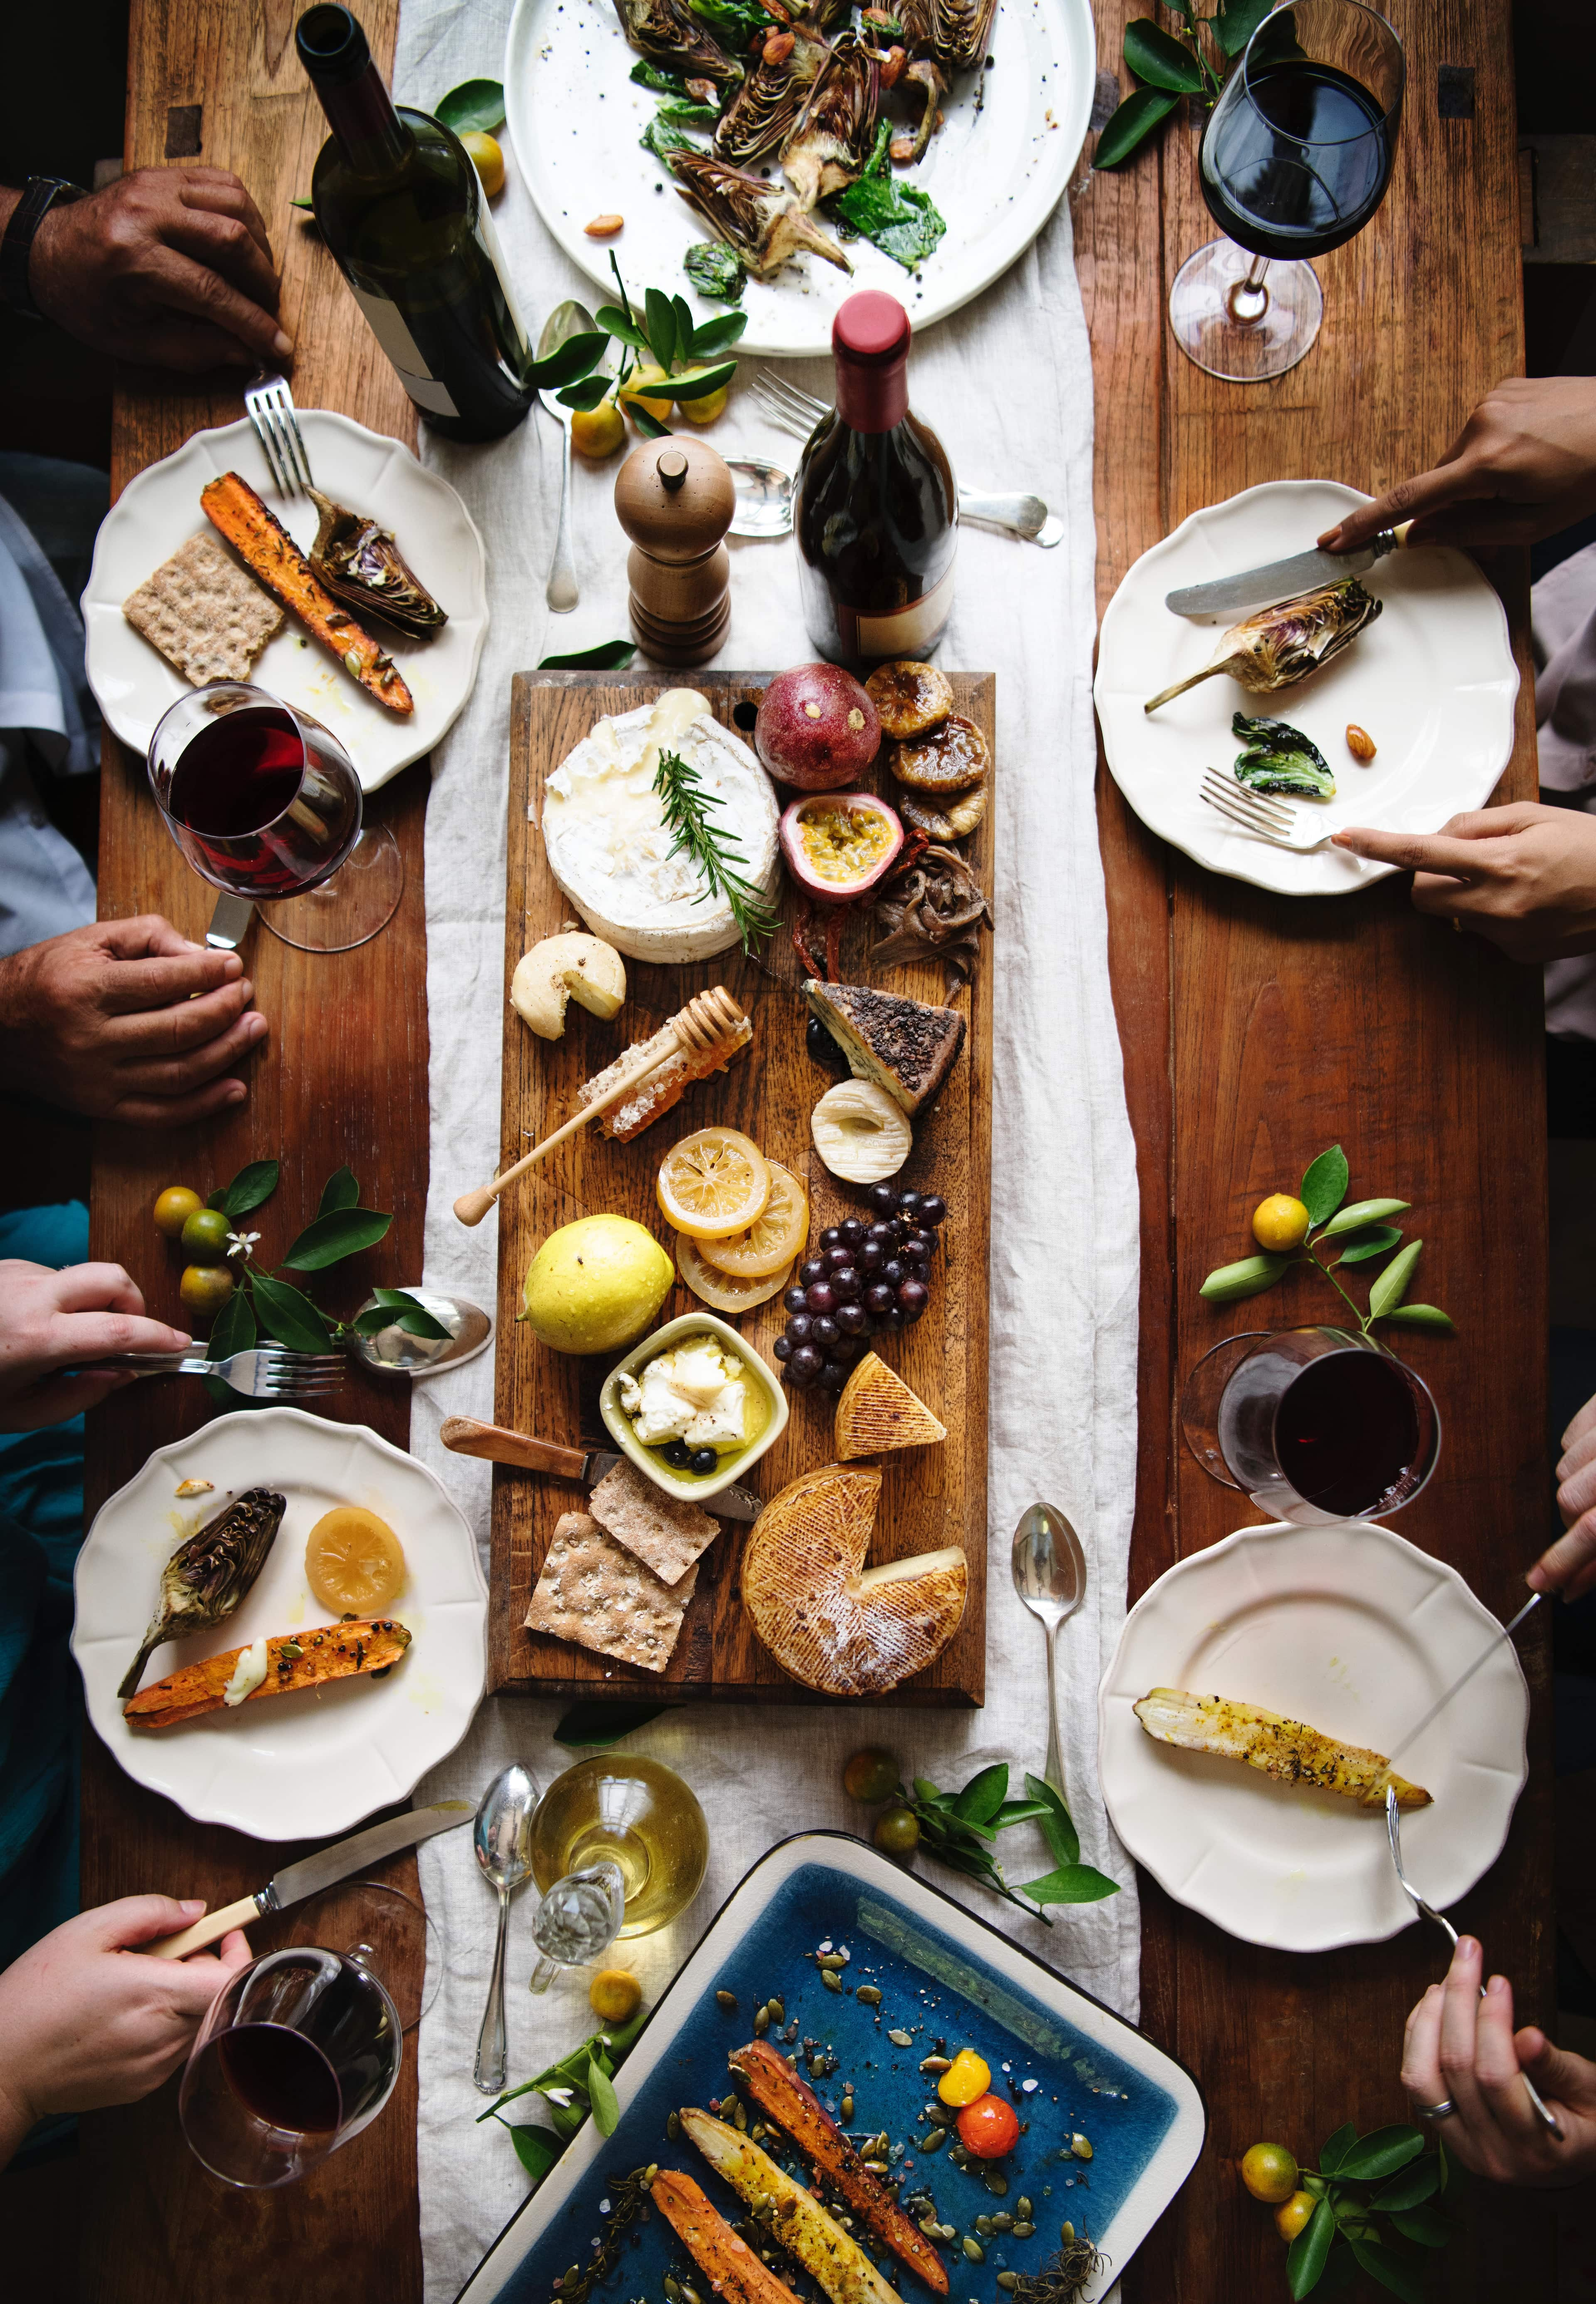 Food Policy for Canada helps make meals like this one possible. A table full of food and wine is seen from above.